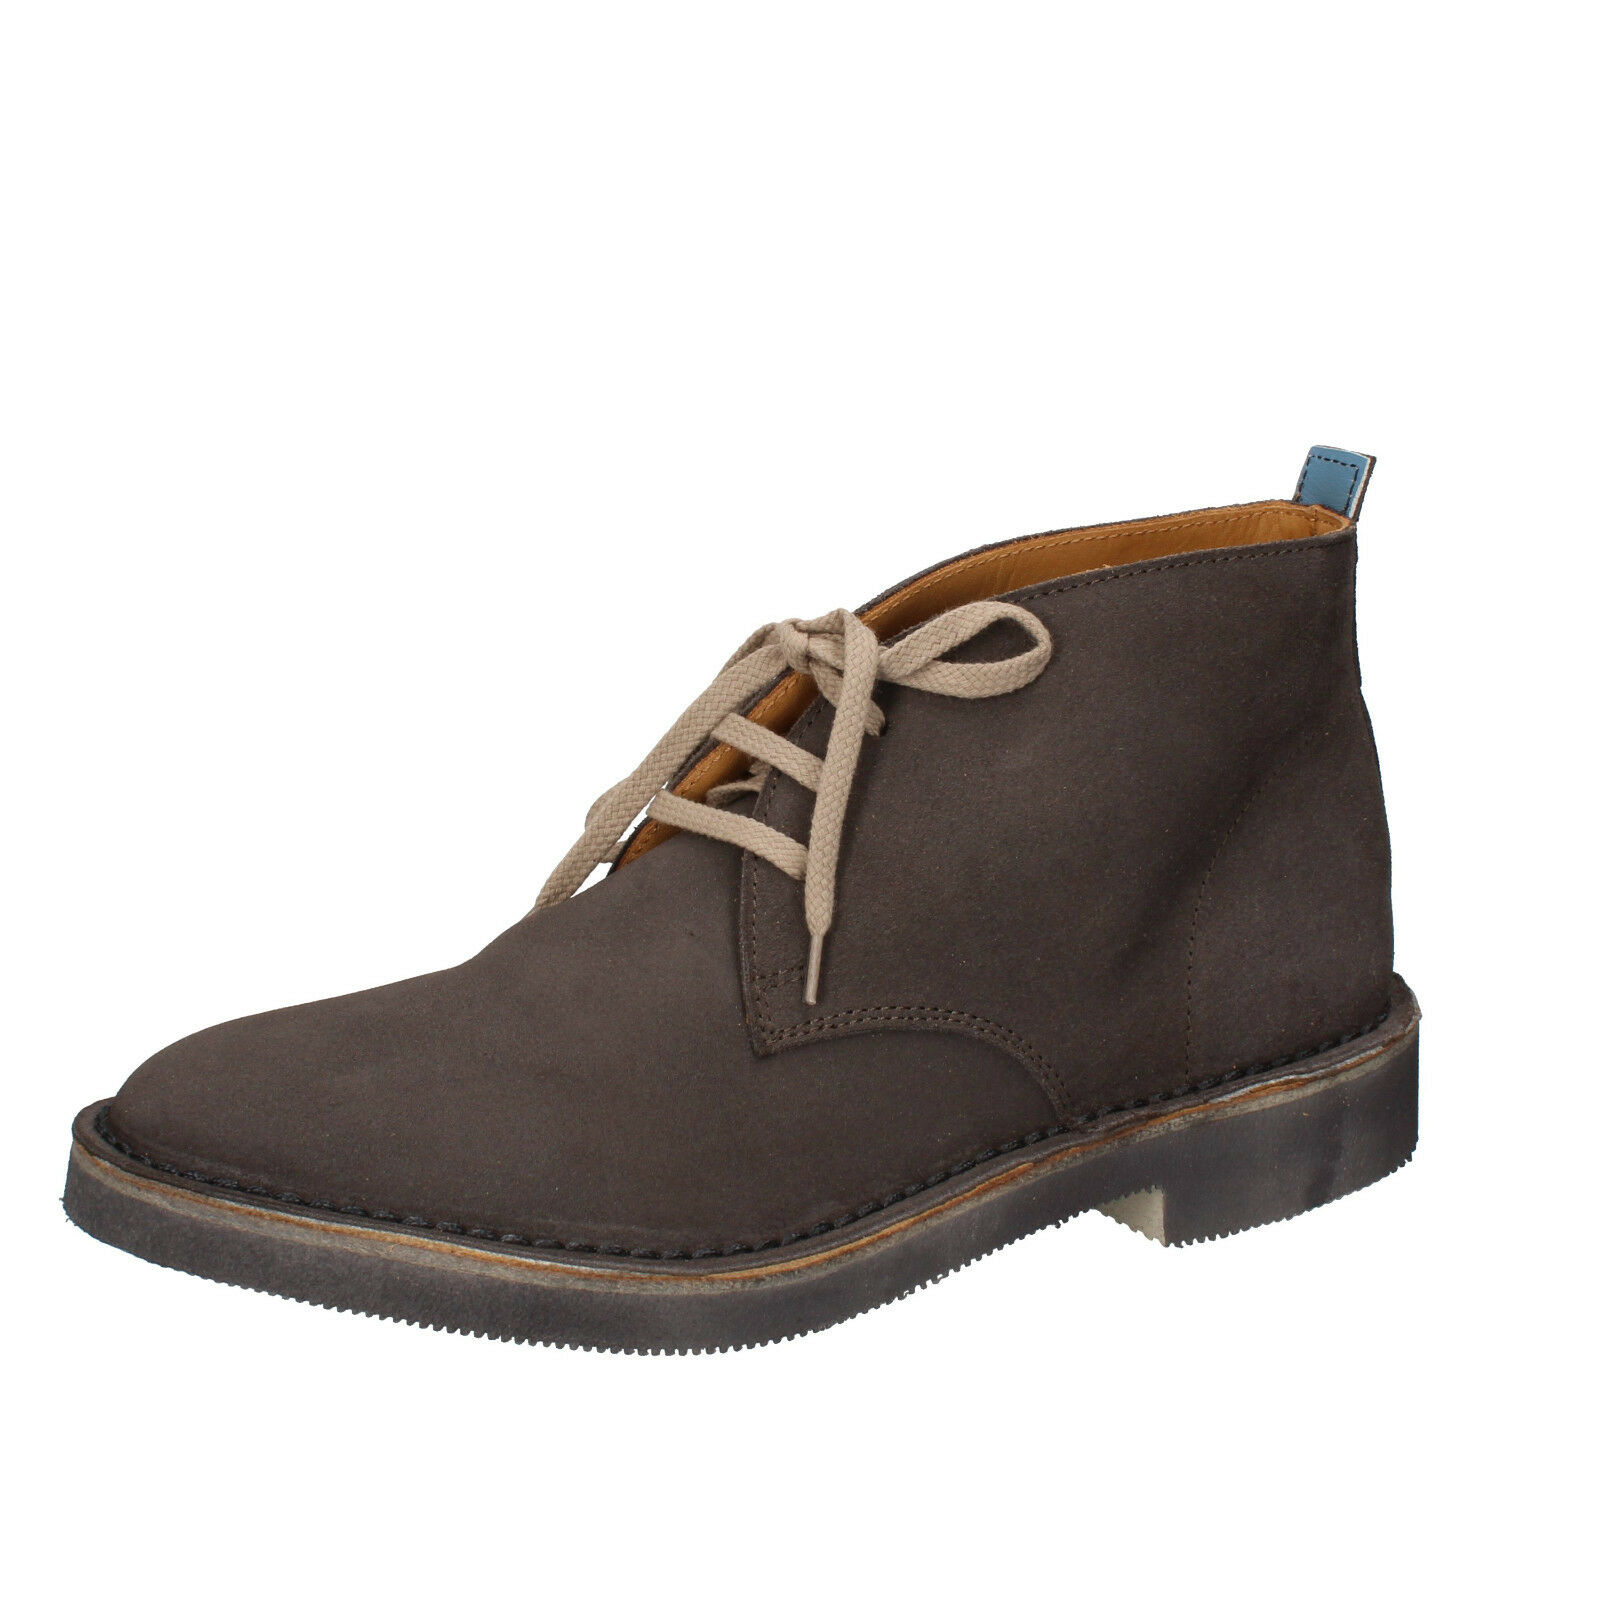 Mens shoes MOMA 10 (EU 44) desert boots grey suede AB328-F